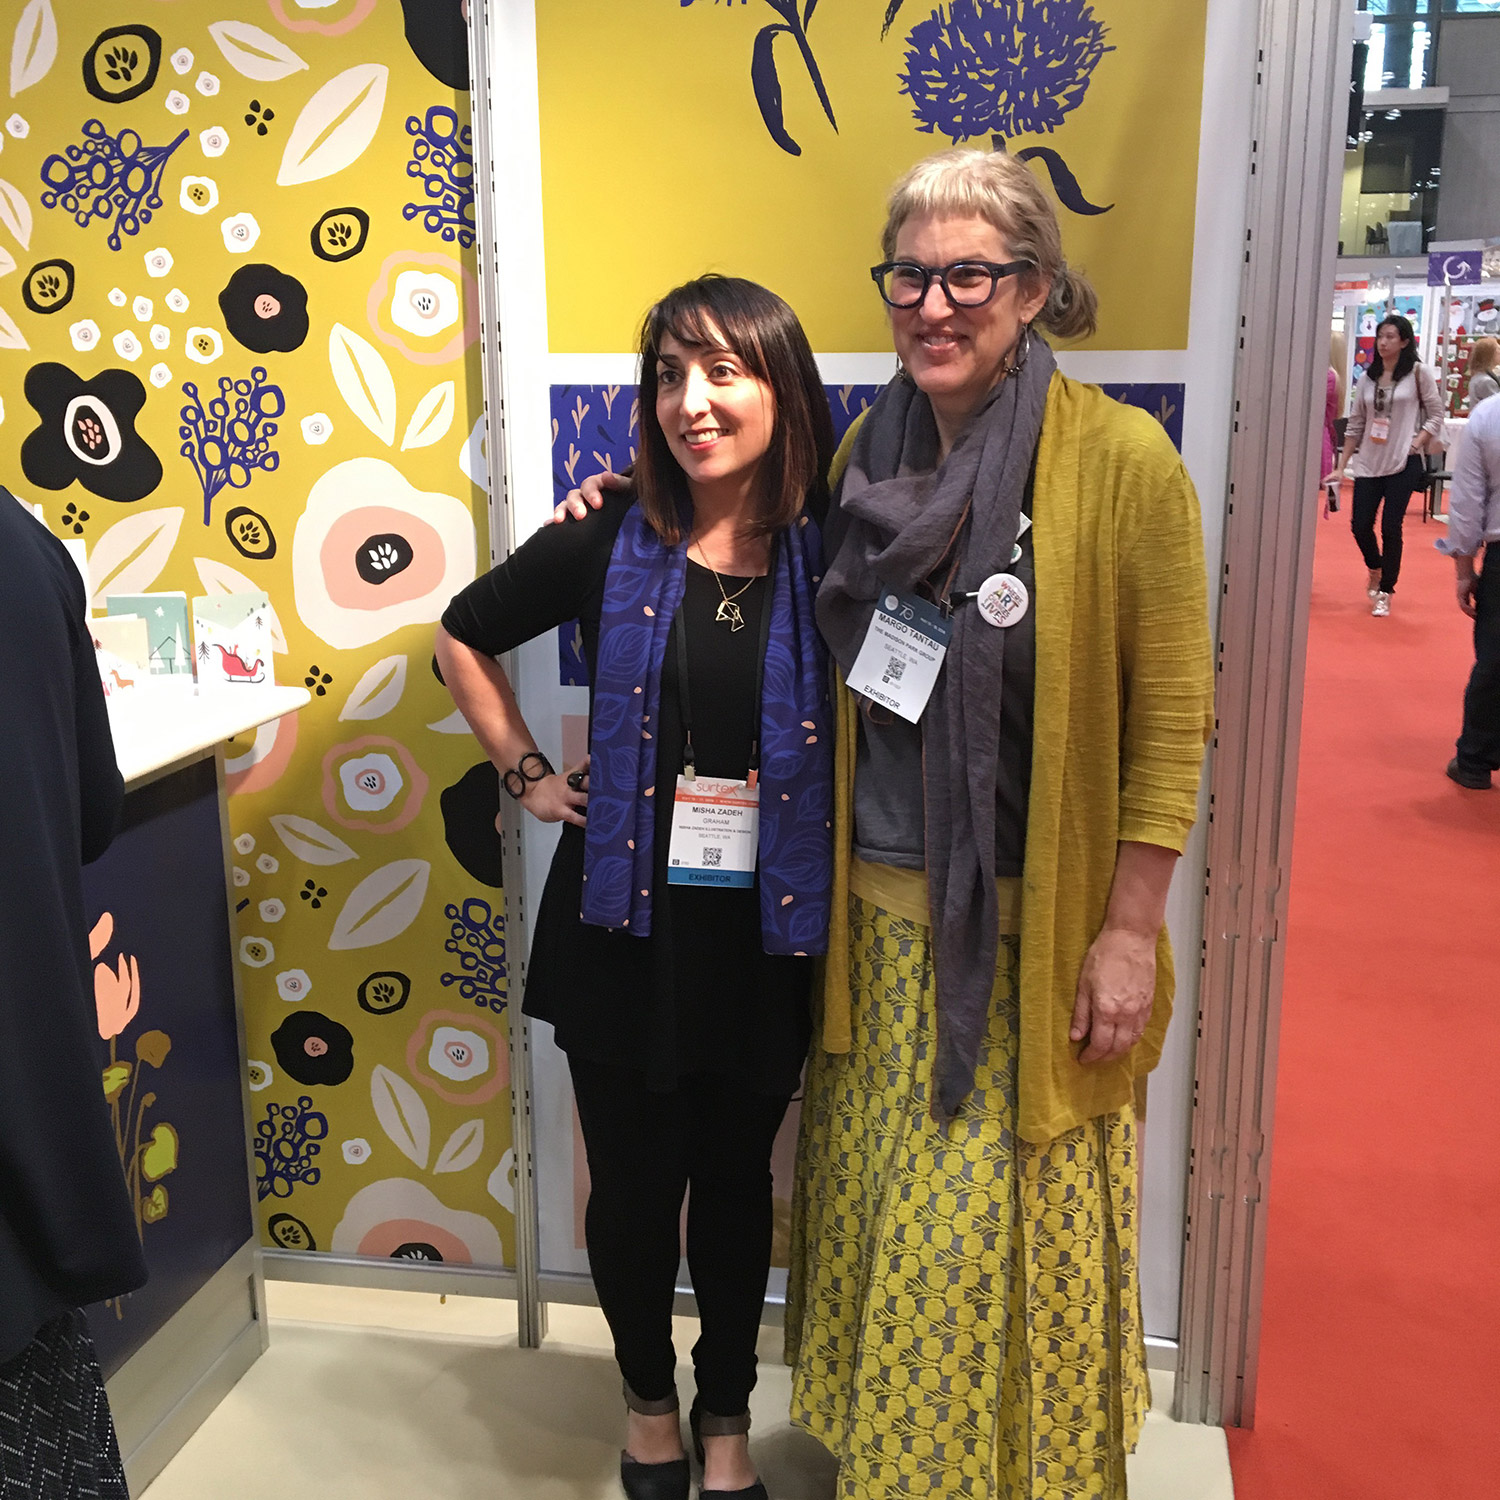 Margo Matches Misha's SURTEX Booth!